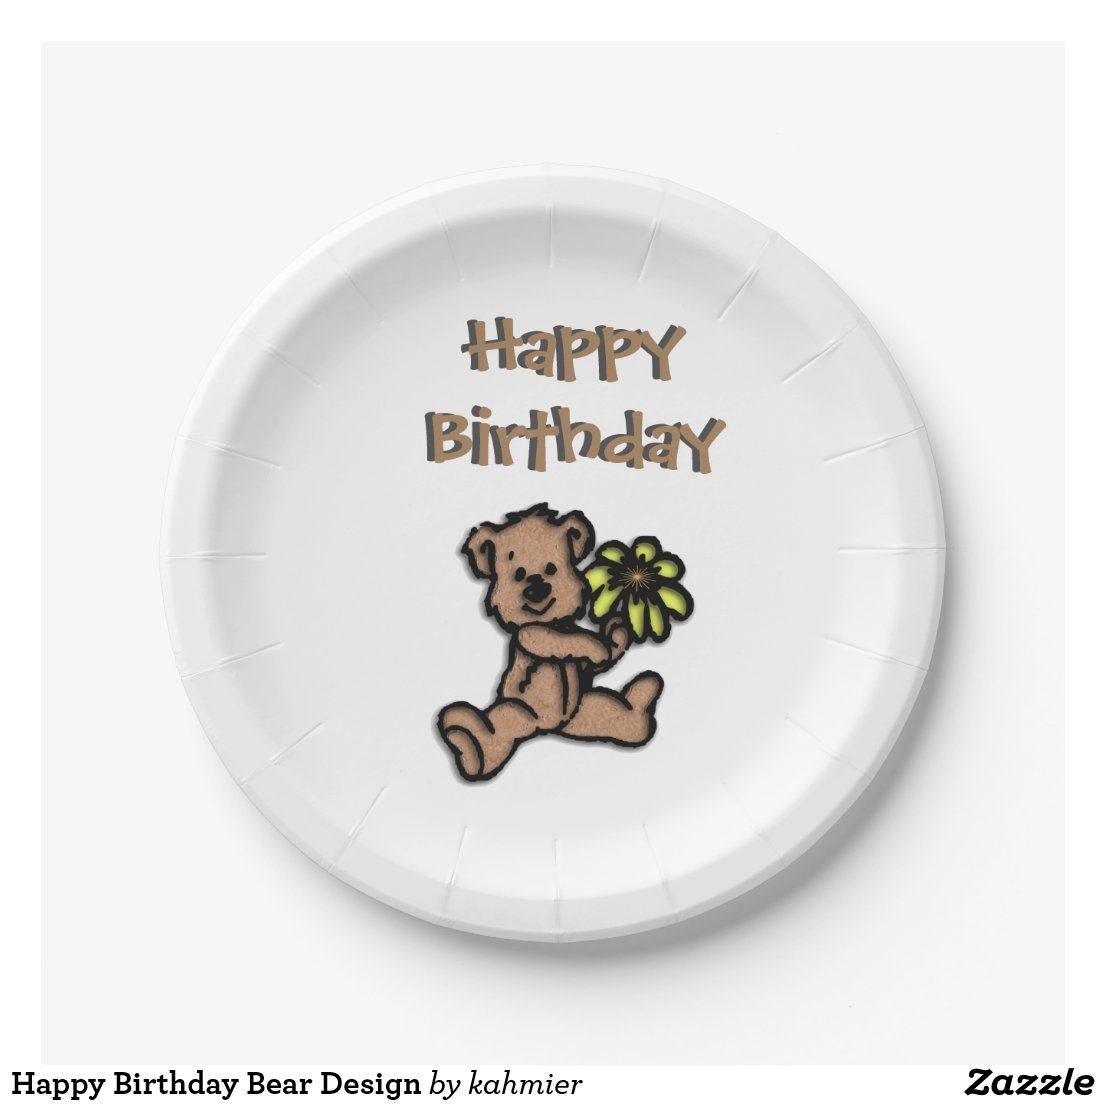 Happy Birthday Bear Design Paper Plate